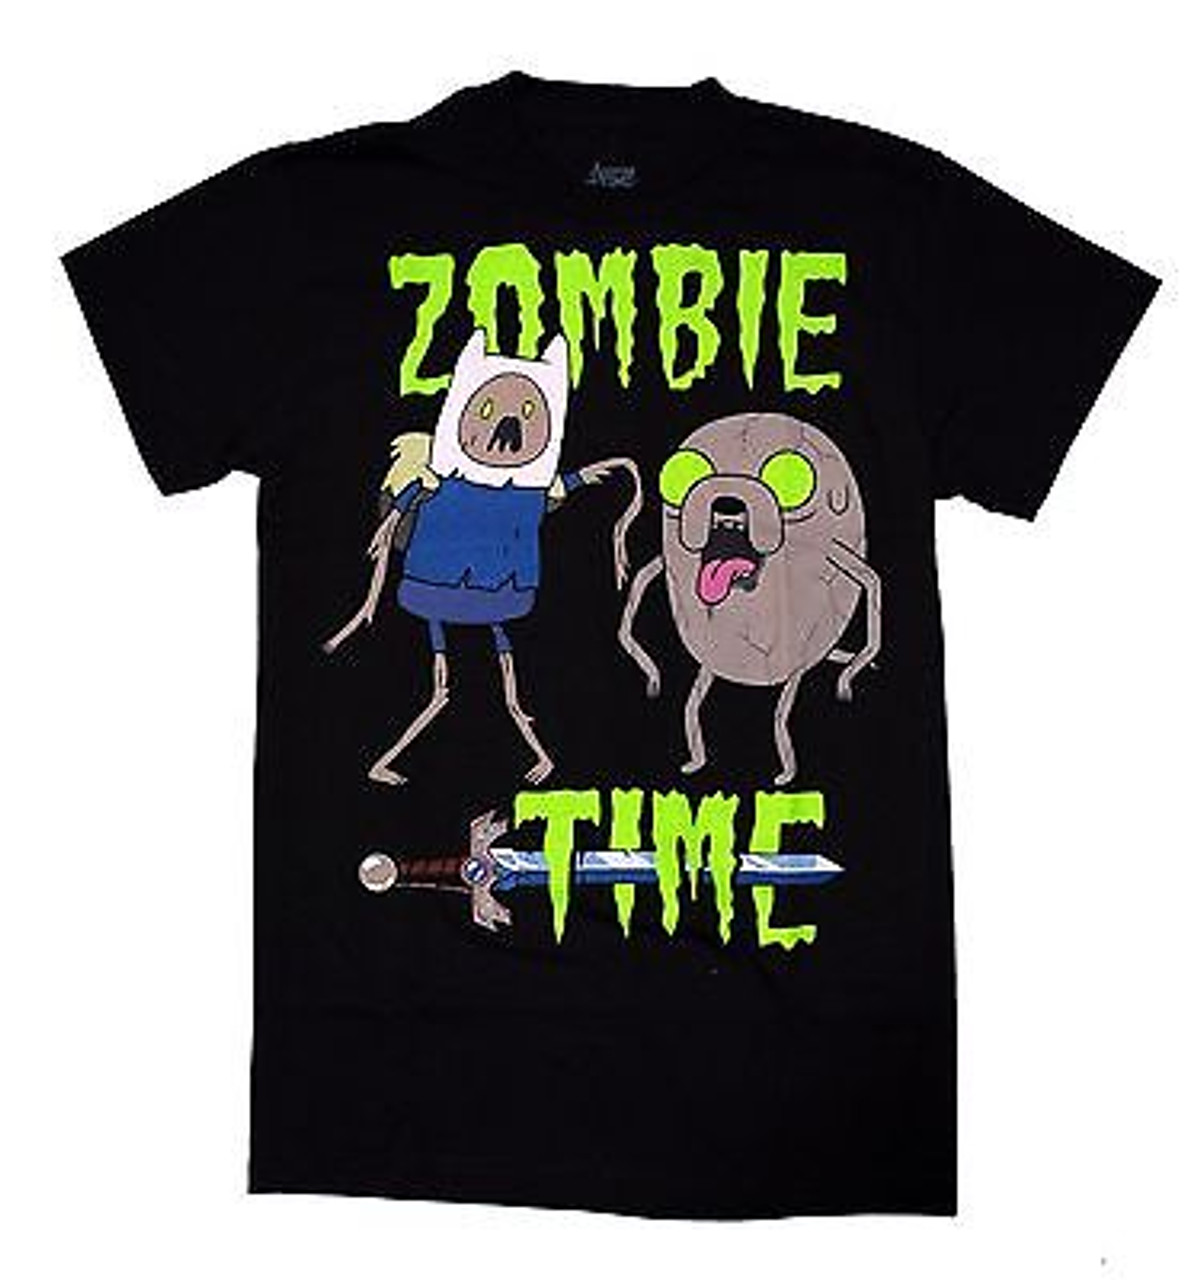 ADVENTURE TIME WITH FINN /& JAKE PX ONE MILLION YEARS DUNGEON T TEE SHIRT S-3XL